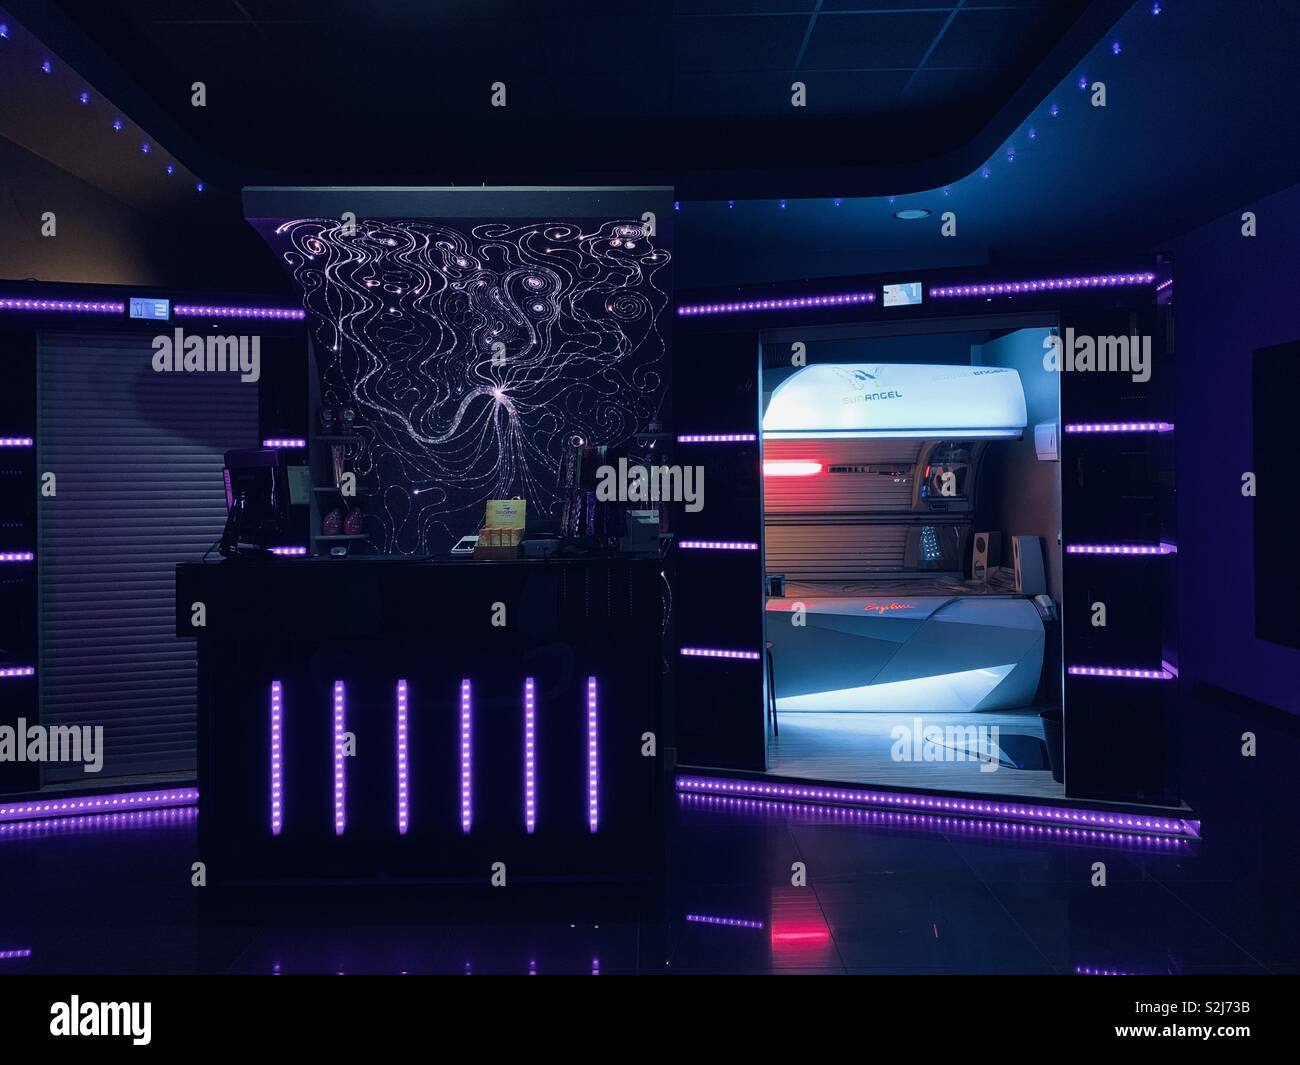 A futuristic looking tanning salon - Stock Image